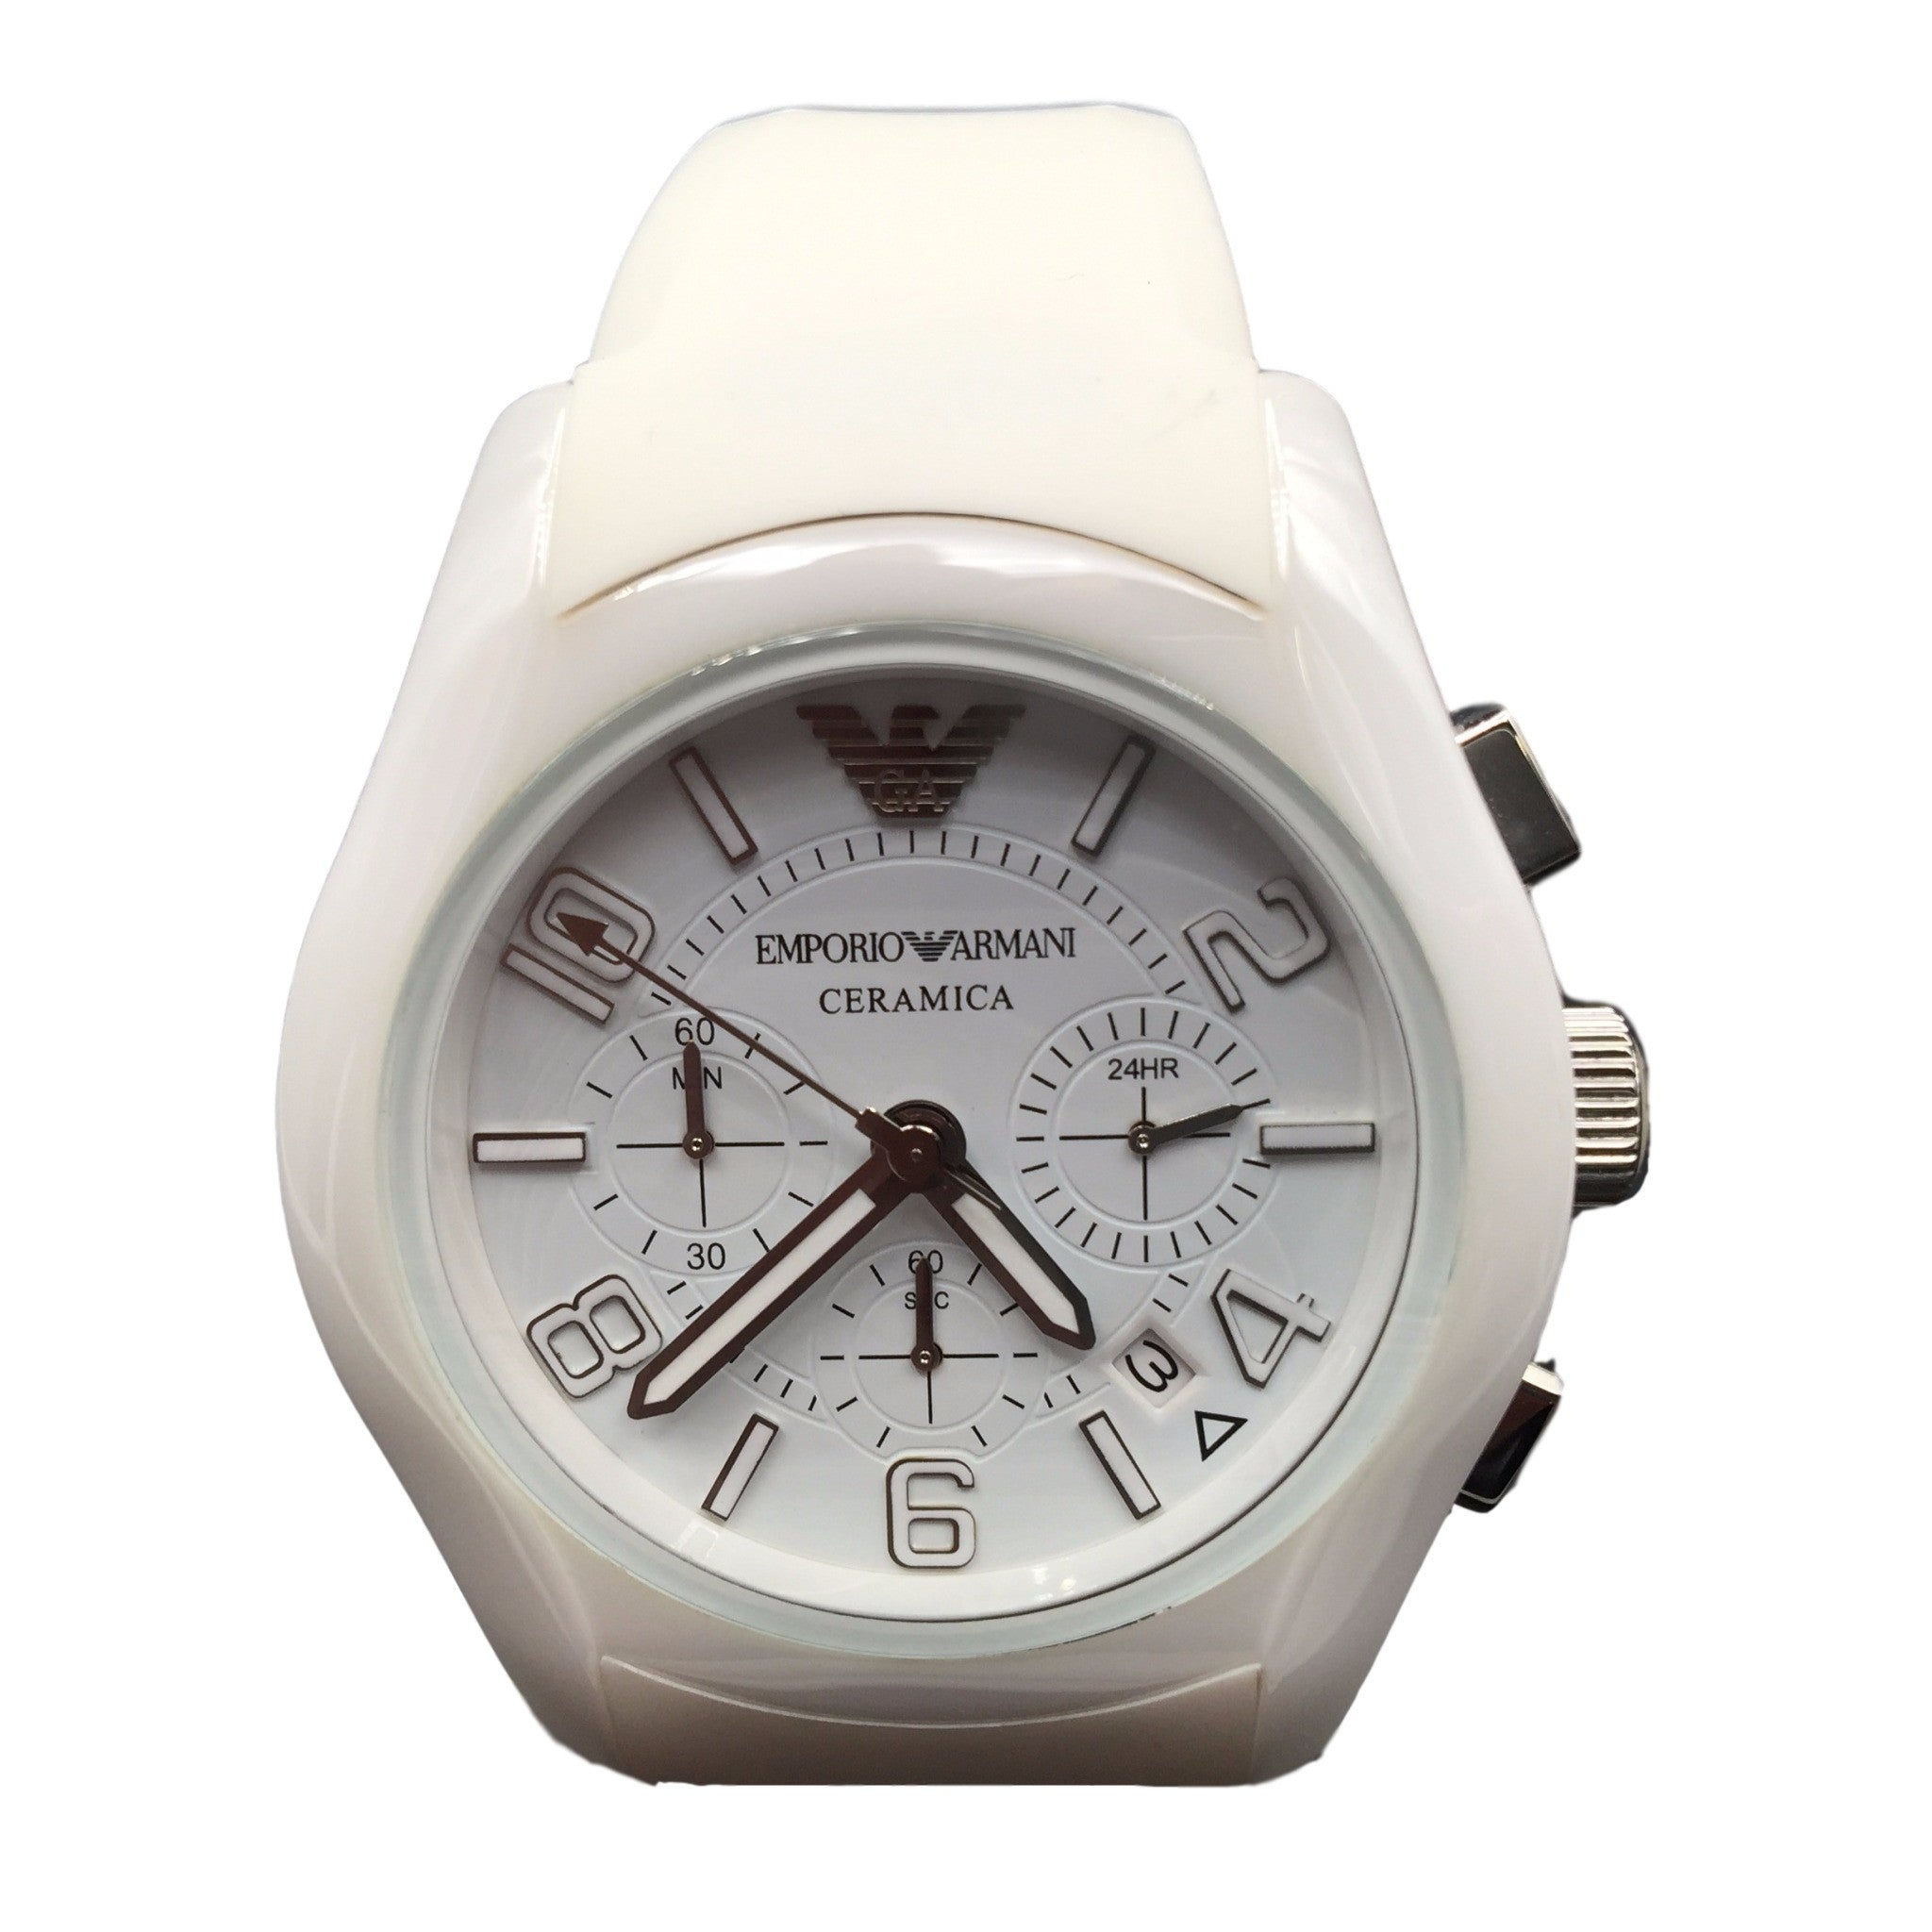 appearance white and maintaining unadorned the tid watches in zoom no monochromatic transparent available durable a plastic gives solid watch shop look an lightweight en whilst black wristband case silicone that